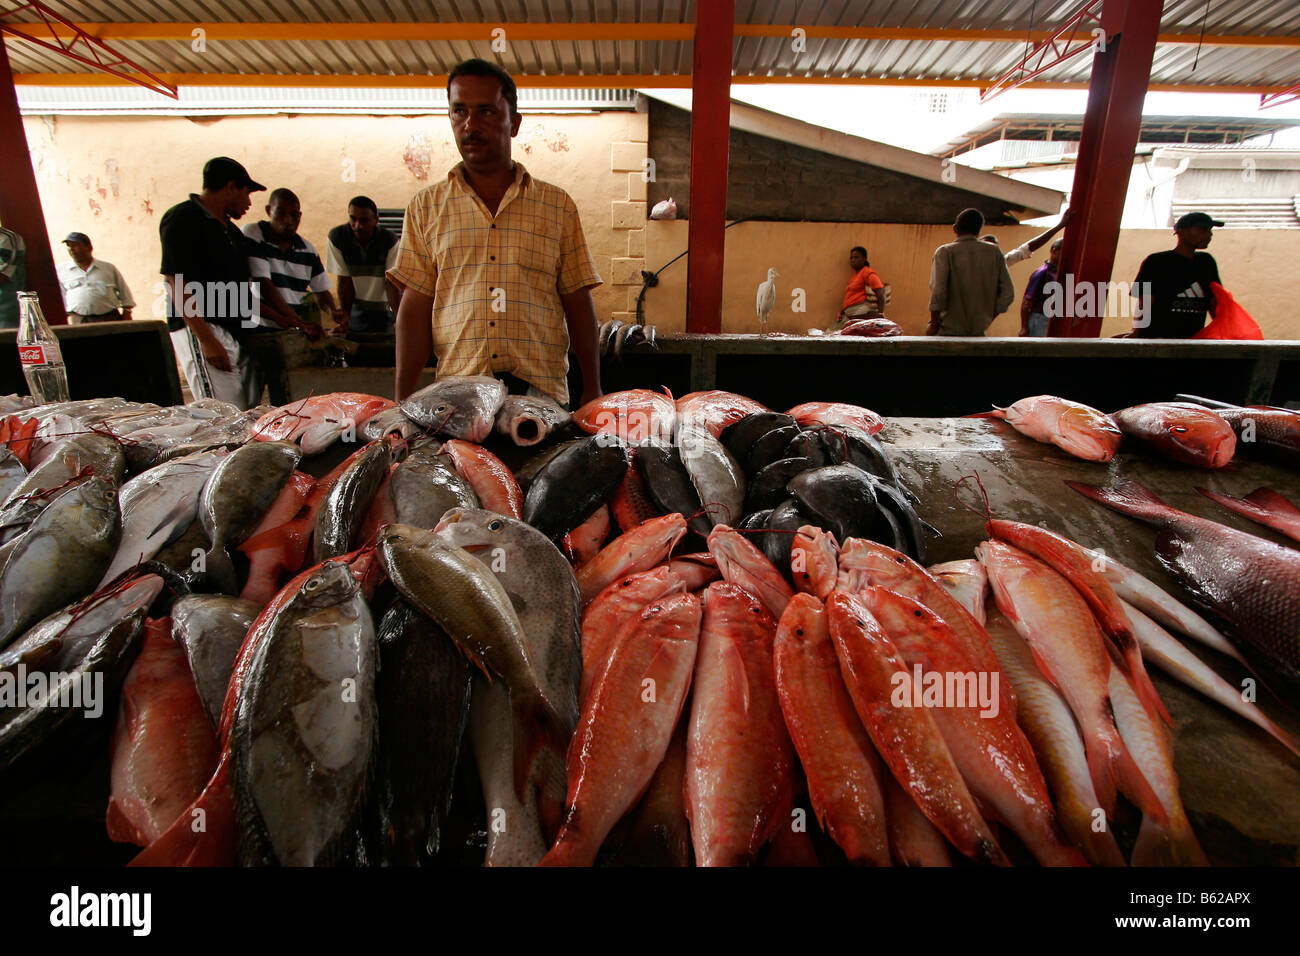 Dealer with freshly caught fish in the market of the island capital city of Victoria, Mahe Island, Seychelles, Africa - Stock Image